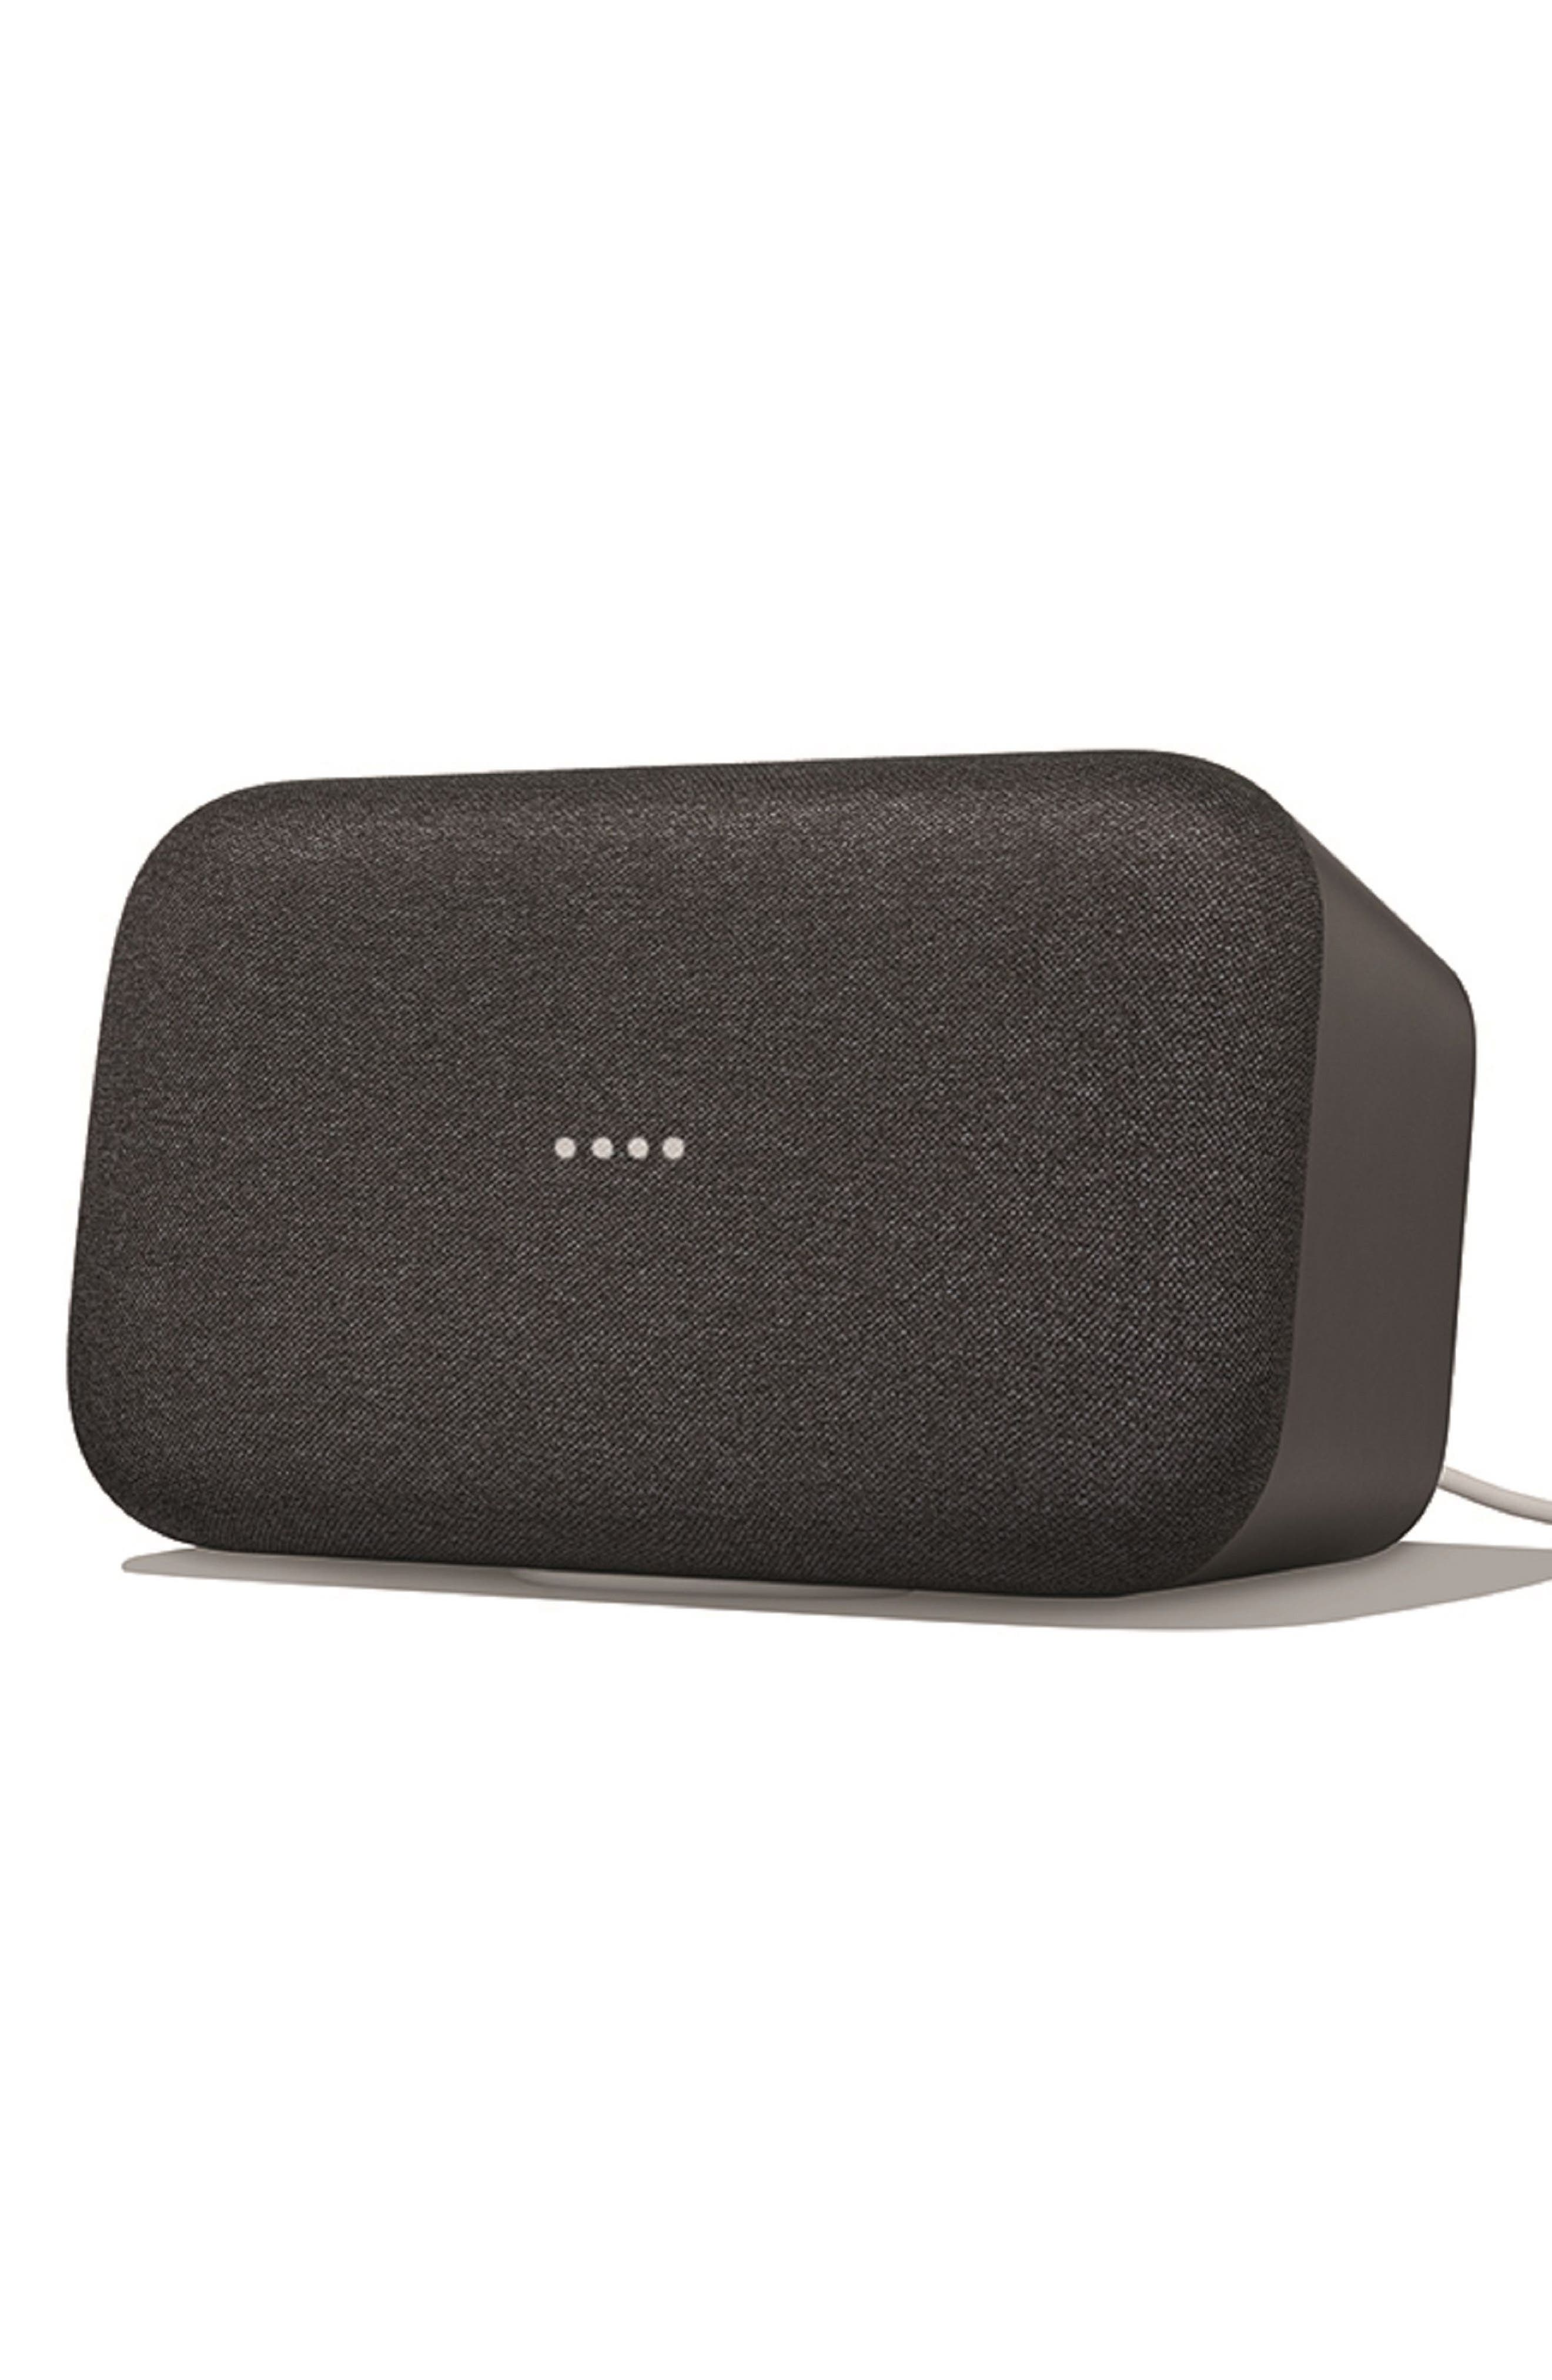 Home Max Wireless Speaker,                             Main thumbnail 1, color,                             Charcoal